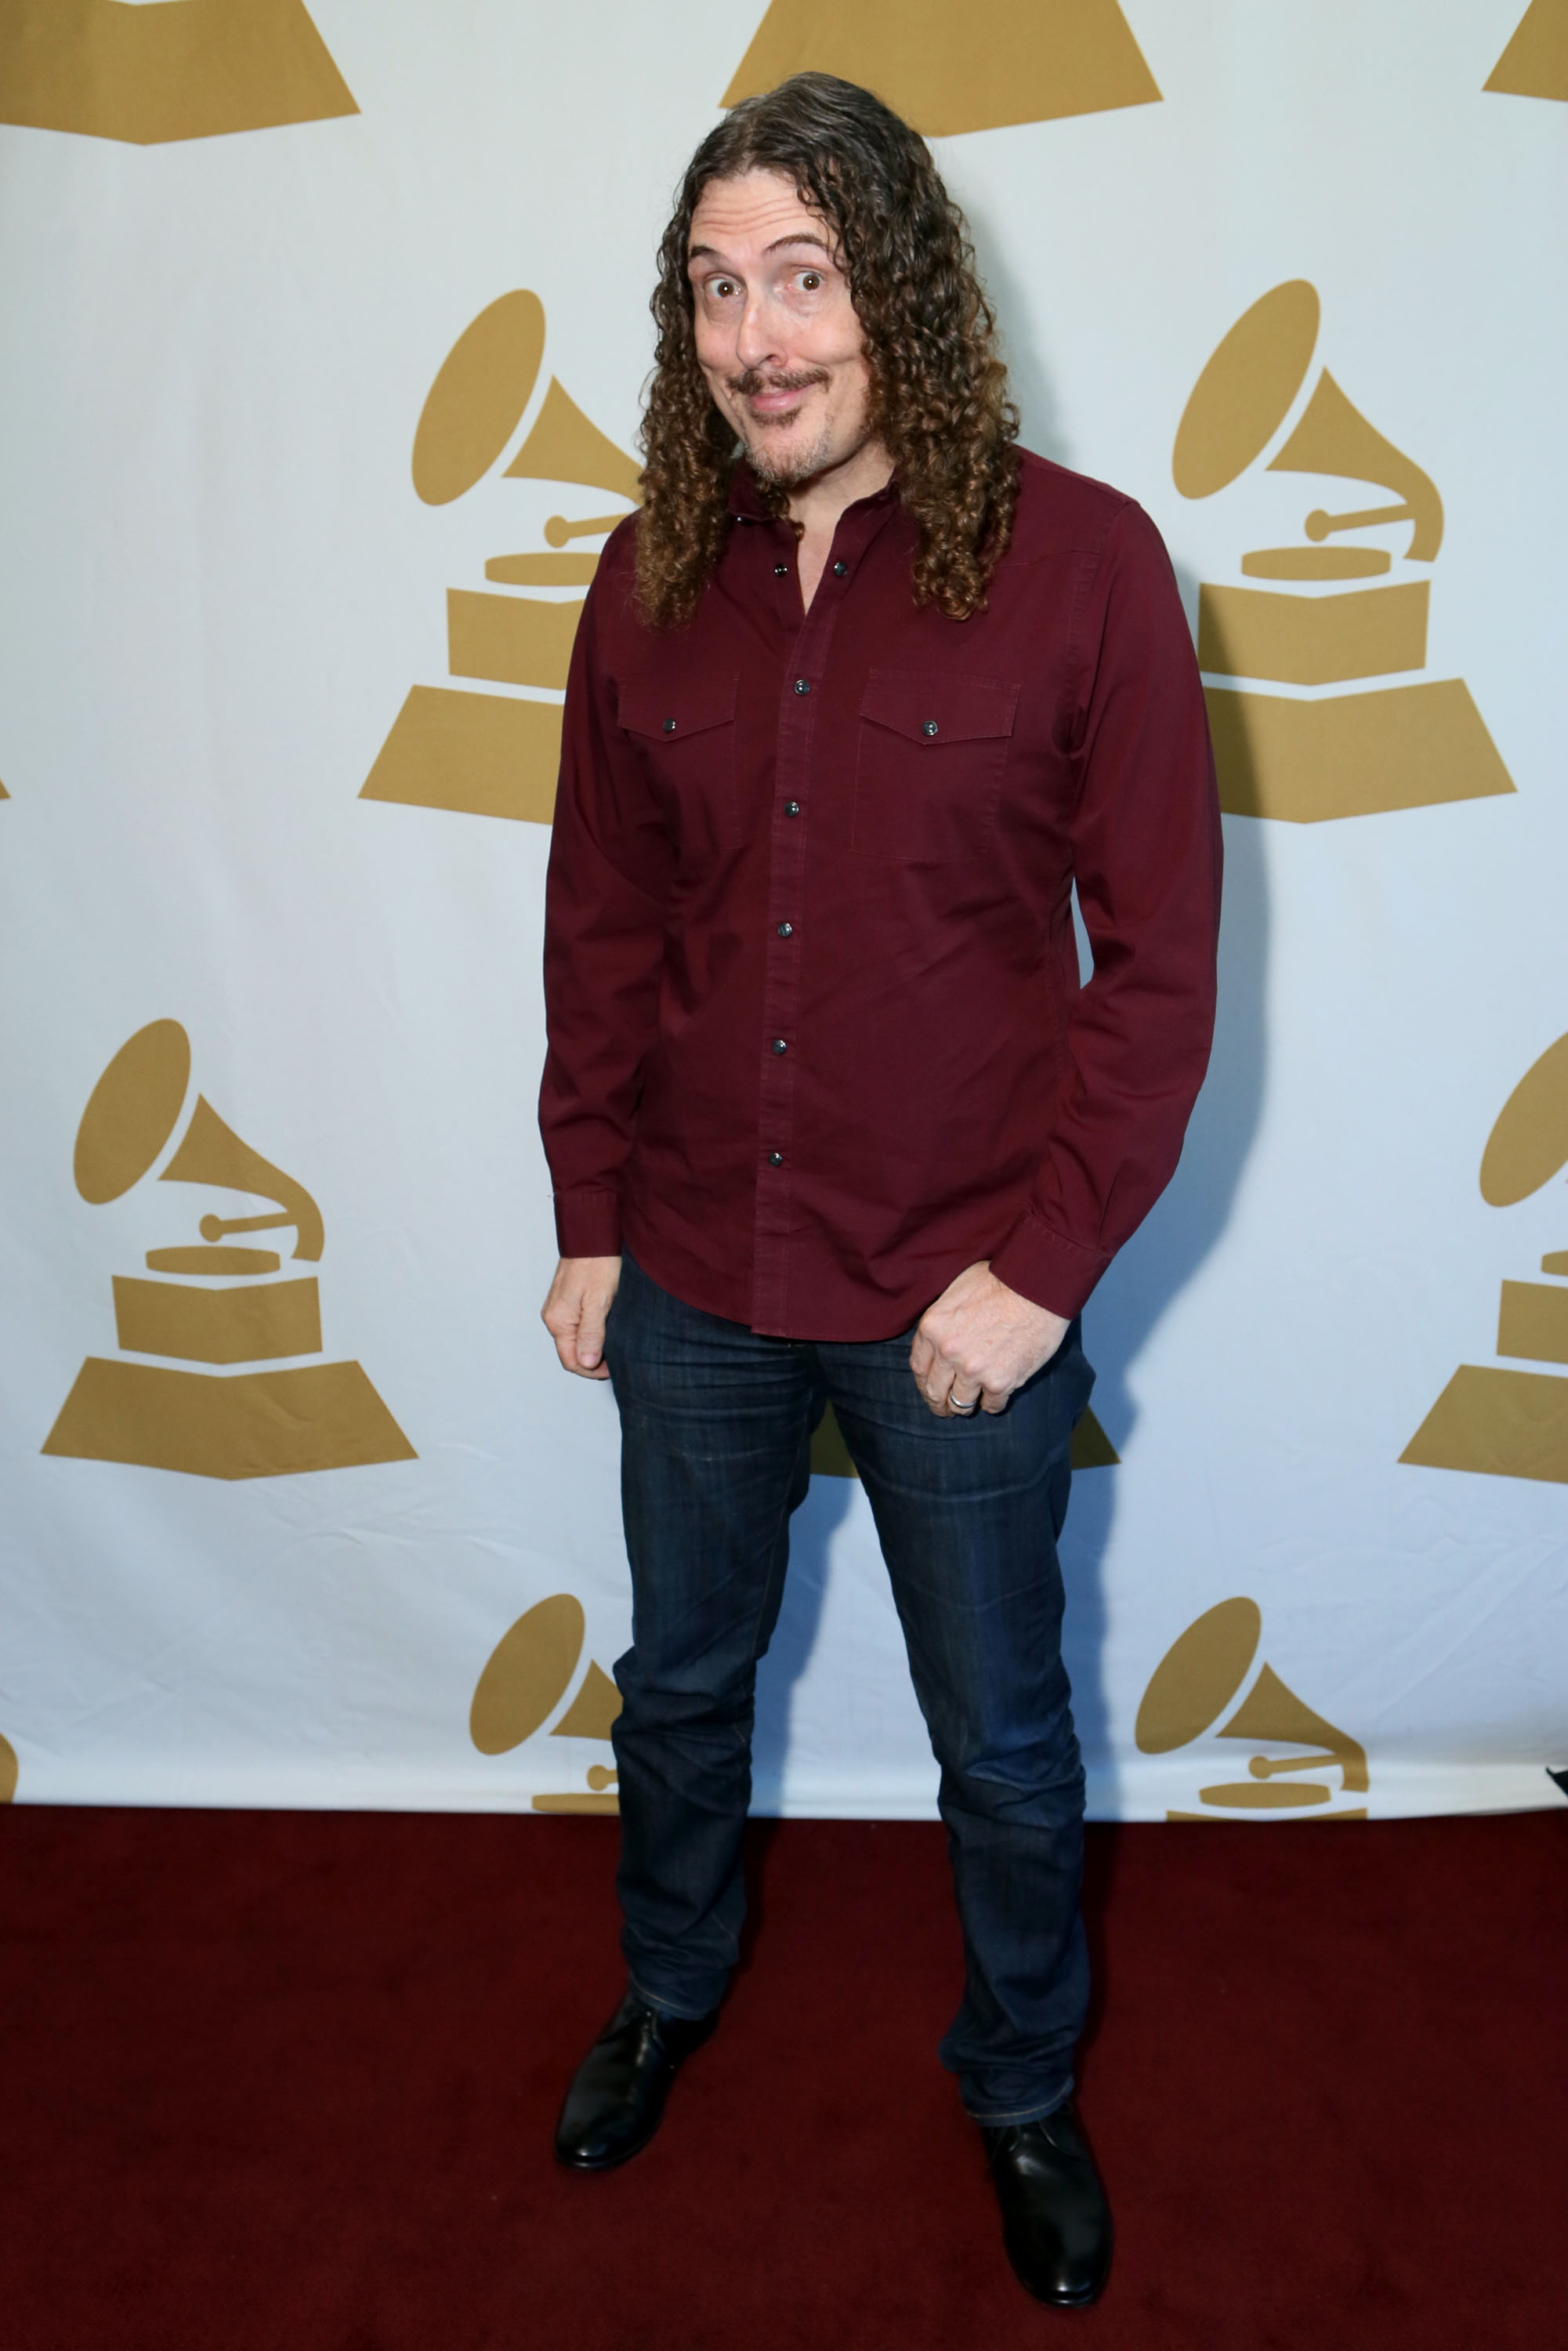 57th Annual GRAMMY Awards nominee Al Yankovic attends Los Angeles GRAMMY Nominee Celebration - LA Chapter on Jan. 17, 2015 in West Hollywood, Calif.